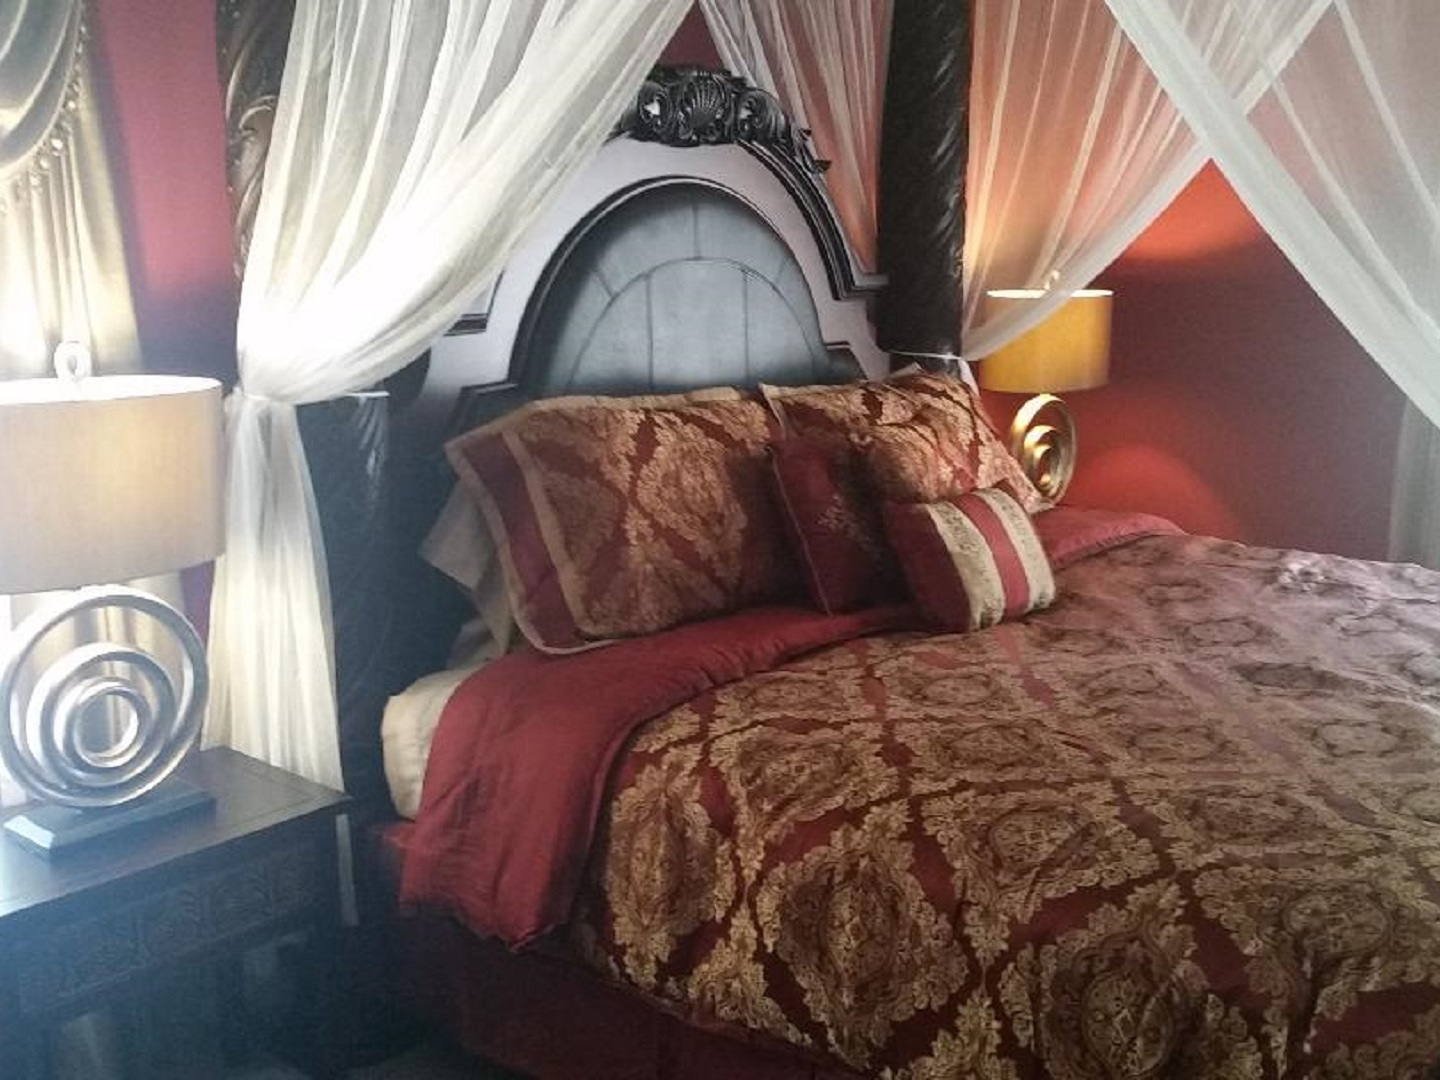 A bedroom with a large bed in a room at Stockbridge Lakes Bed & Breakfast.